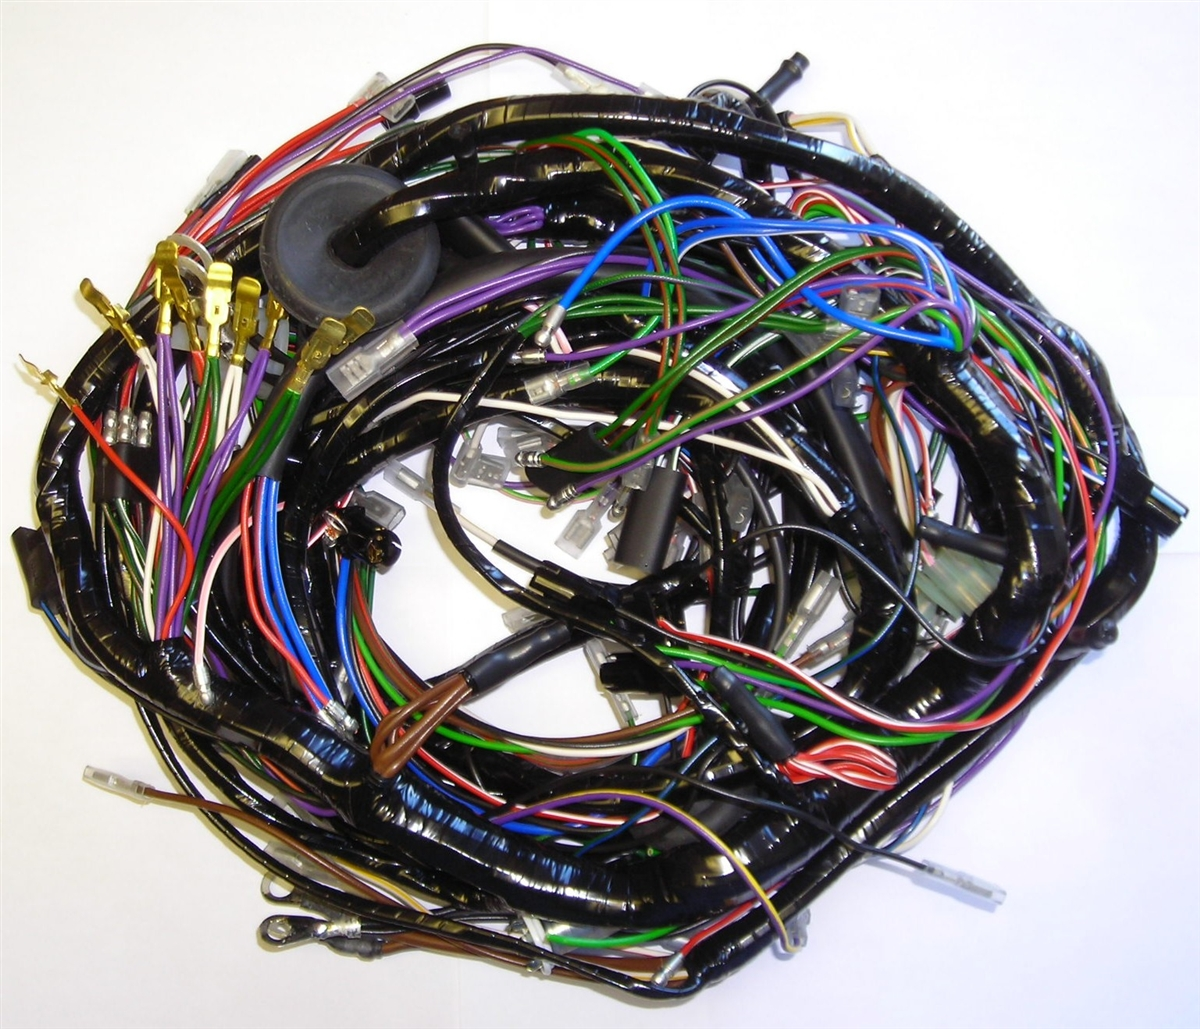 1523 2?1354101756 spitfire 1500 main wiring harness wiring harness diagram at gsmx.co